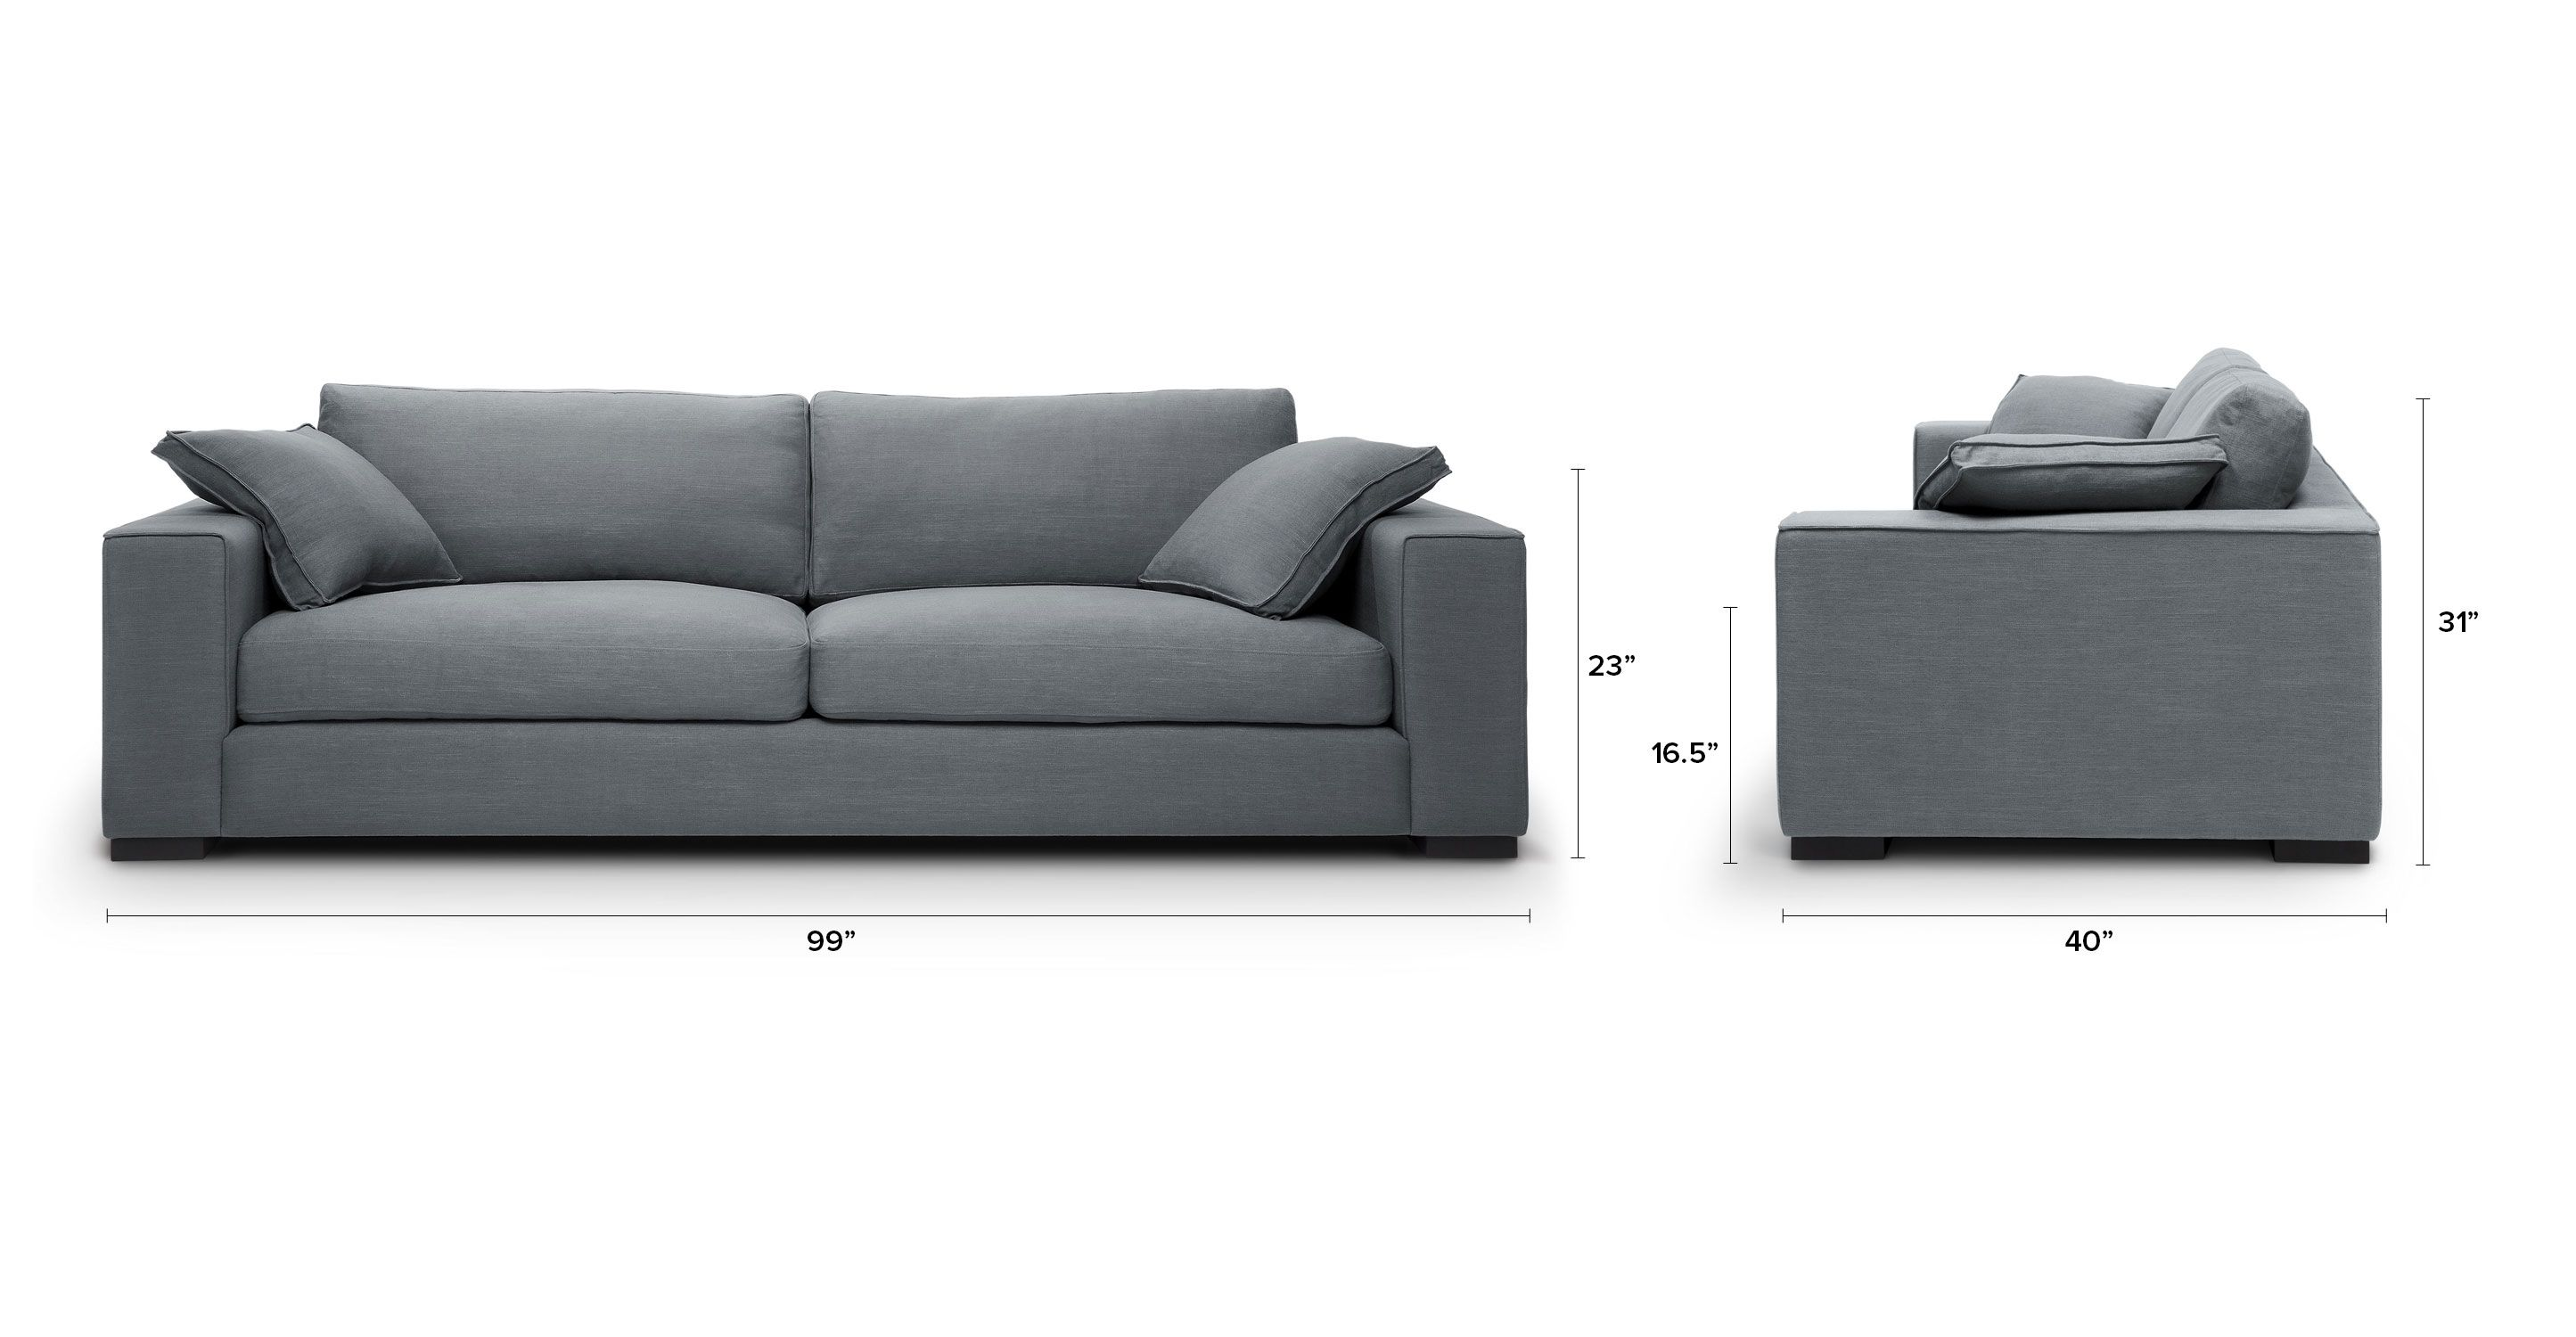 Gray Sofa Solid Wood Legs With Throw Pillows